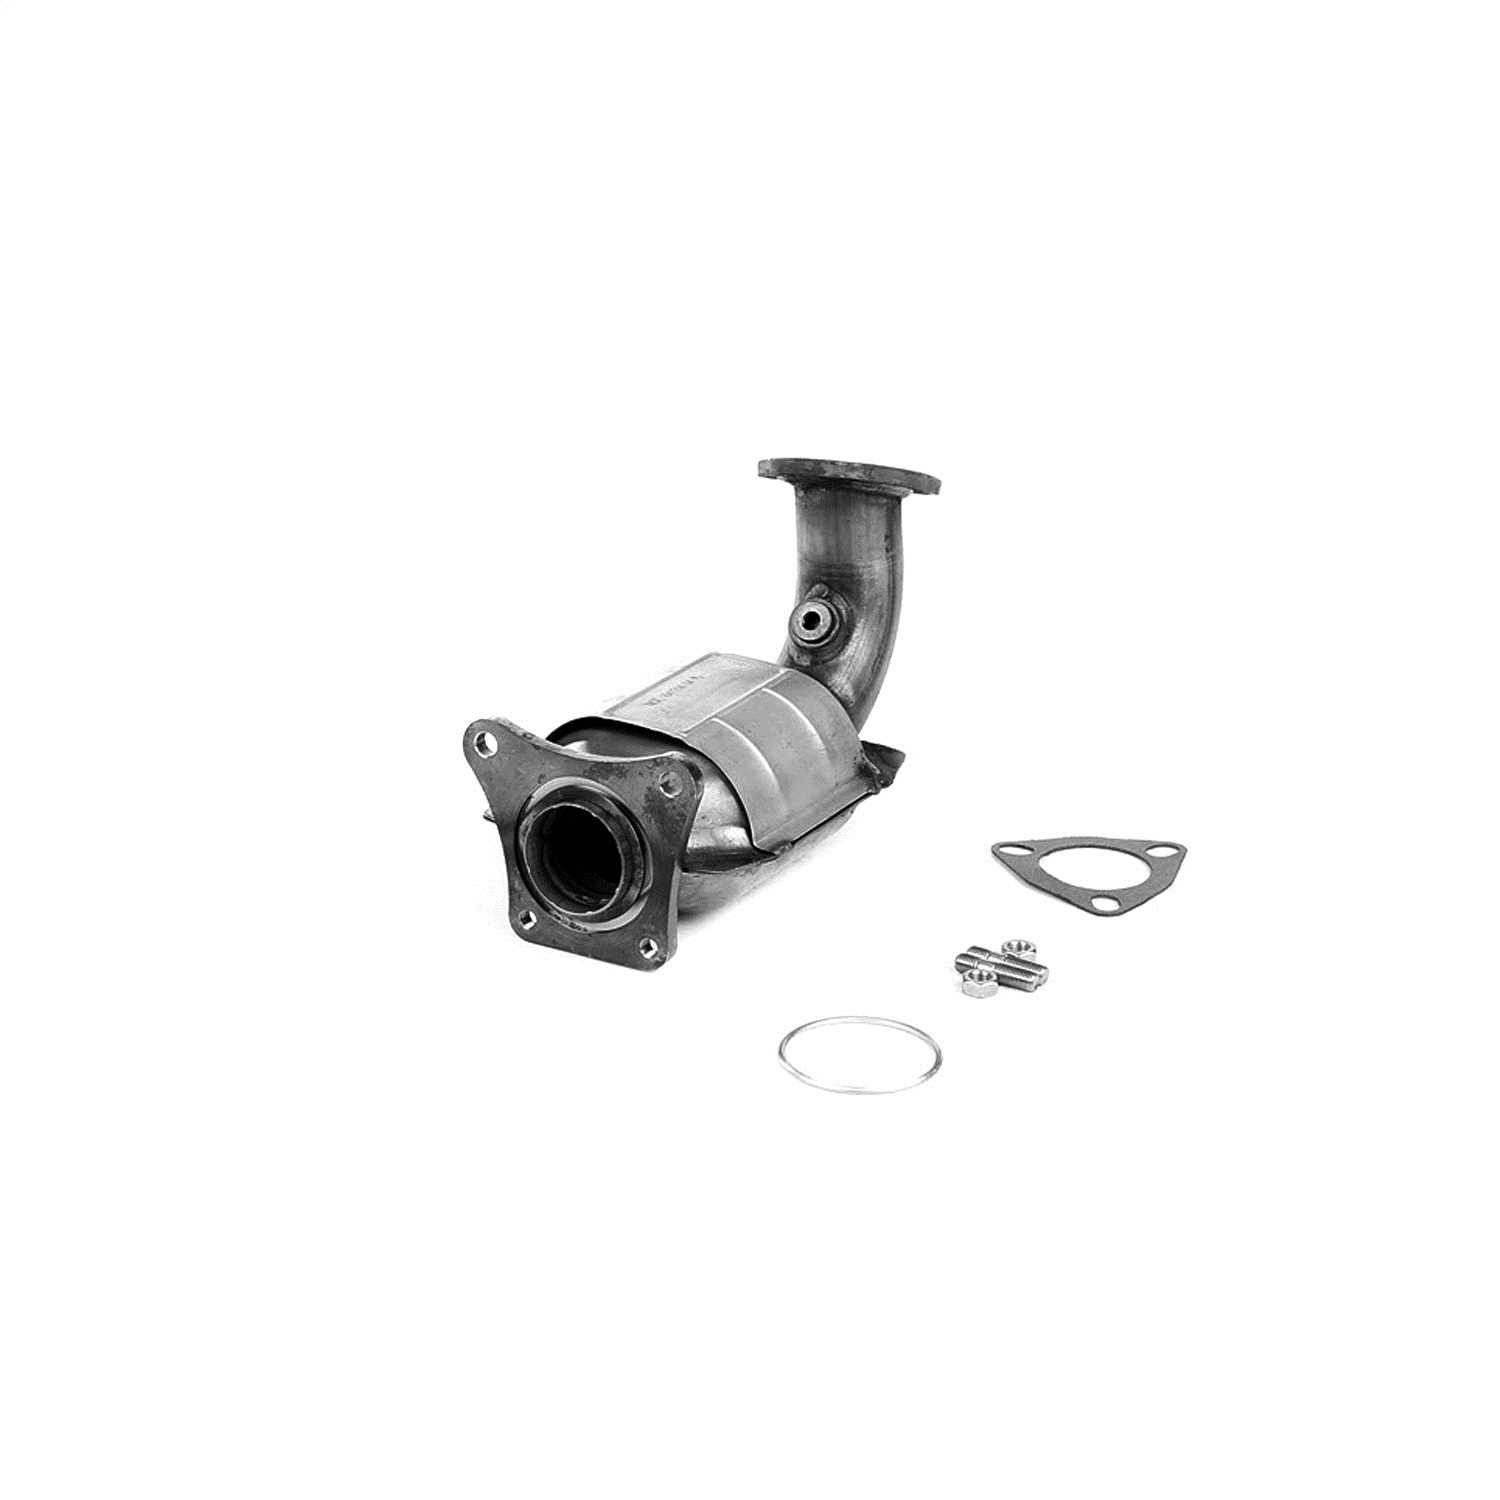 2071197 Flowmaster 49 State Catalytic Converters Direct Fit Catalytic Converter